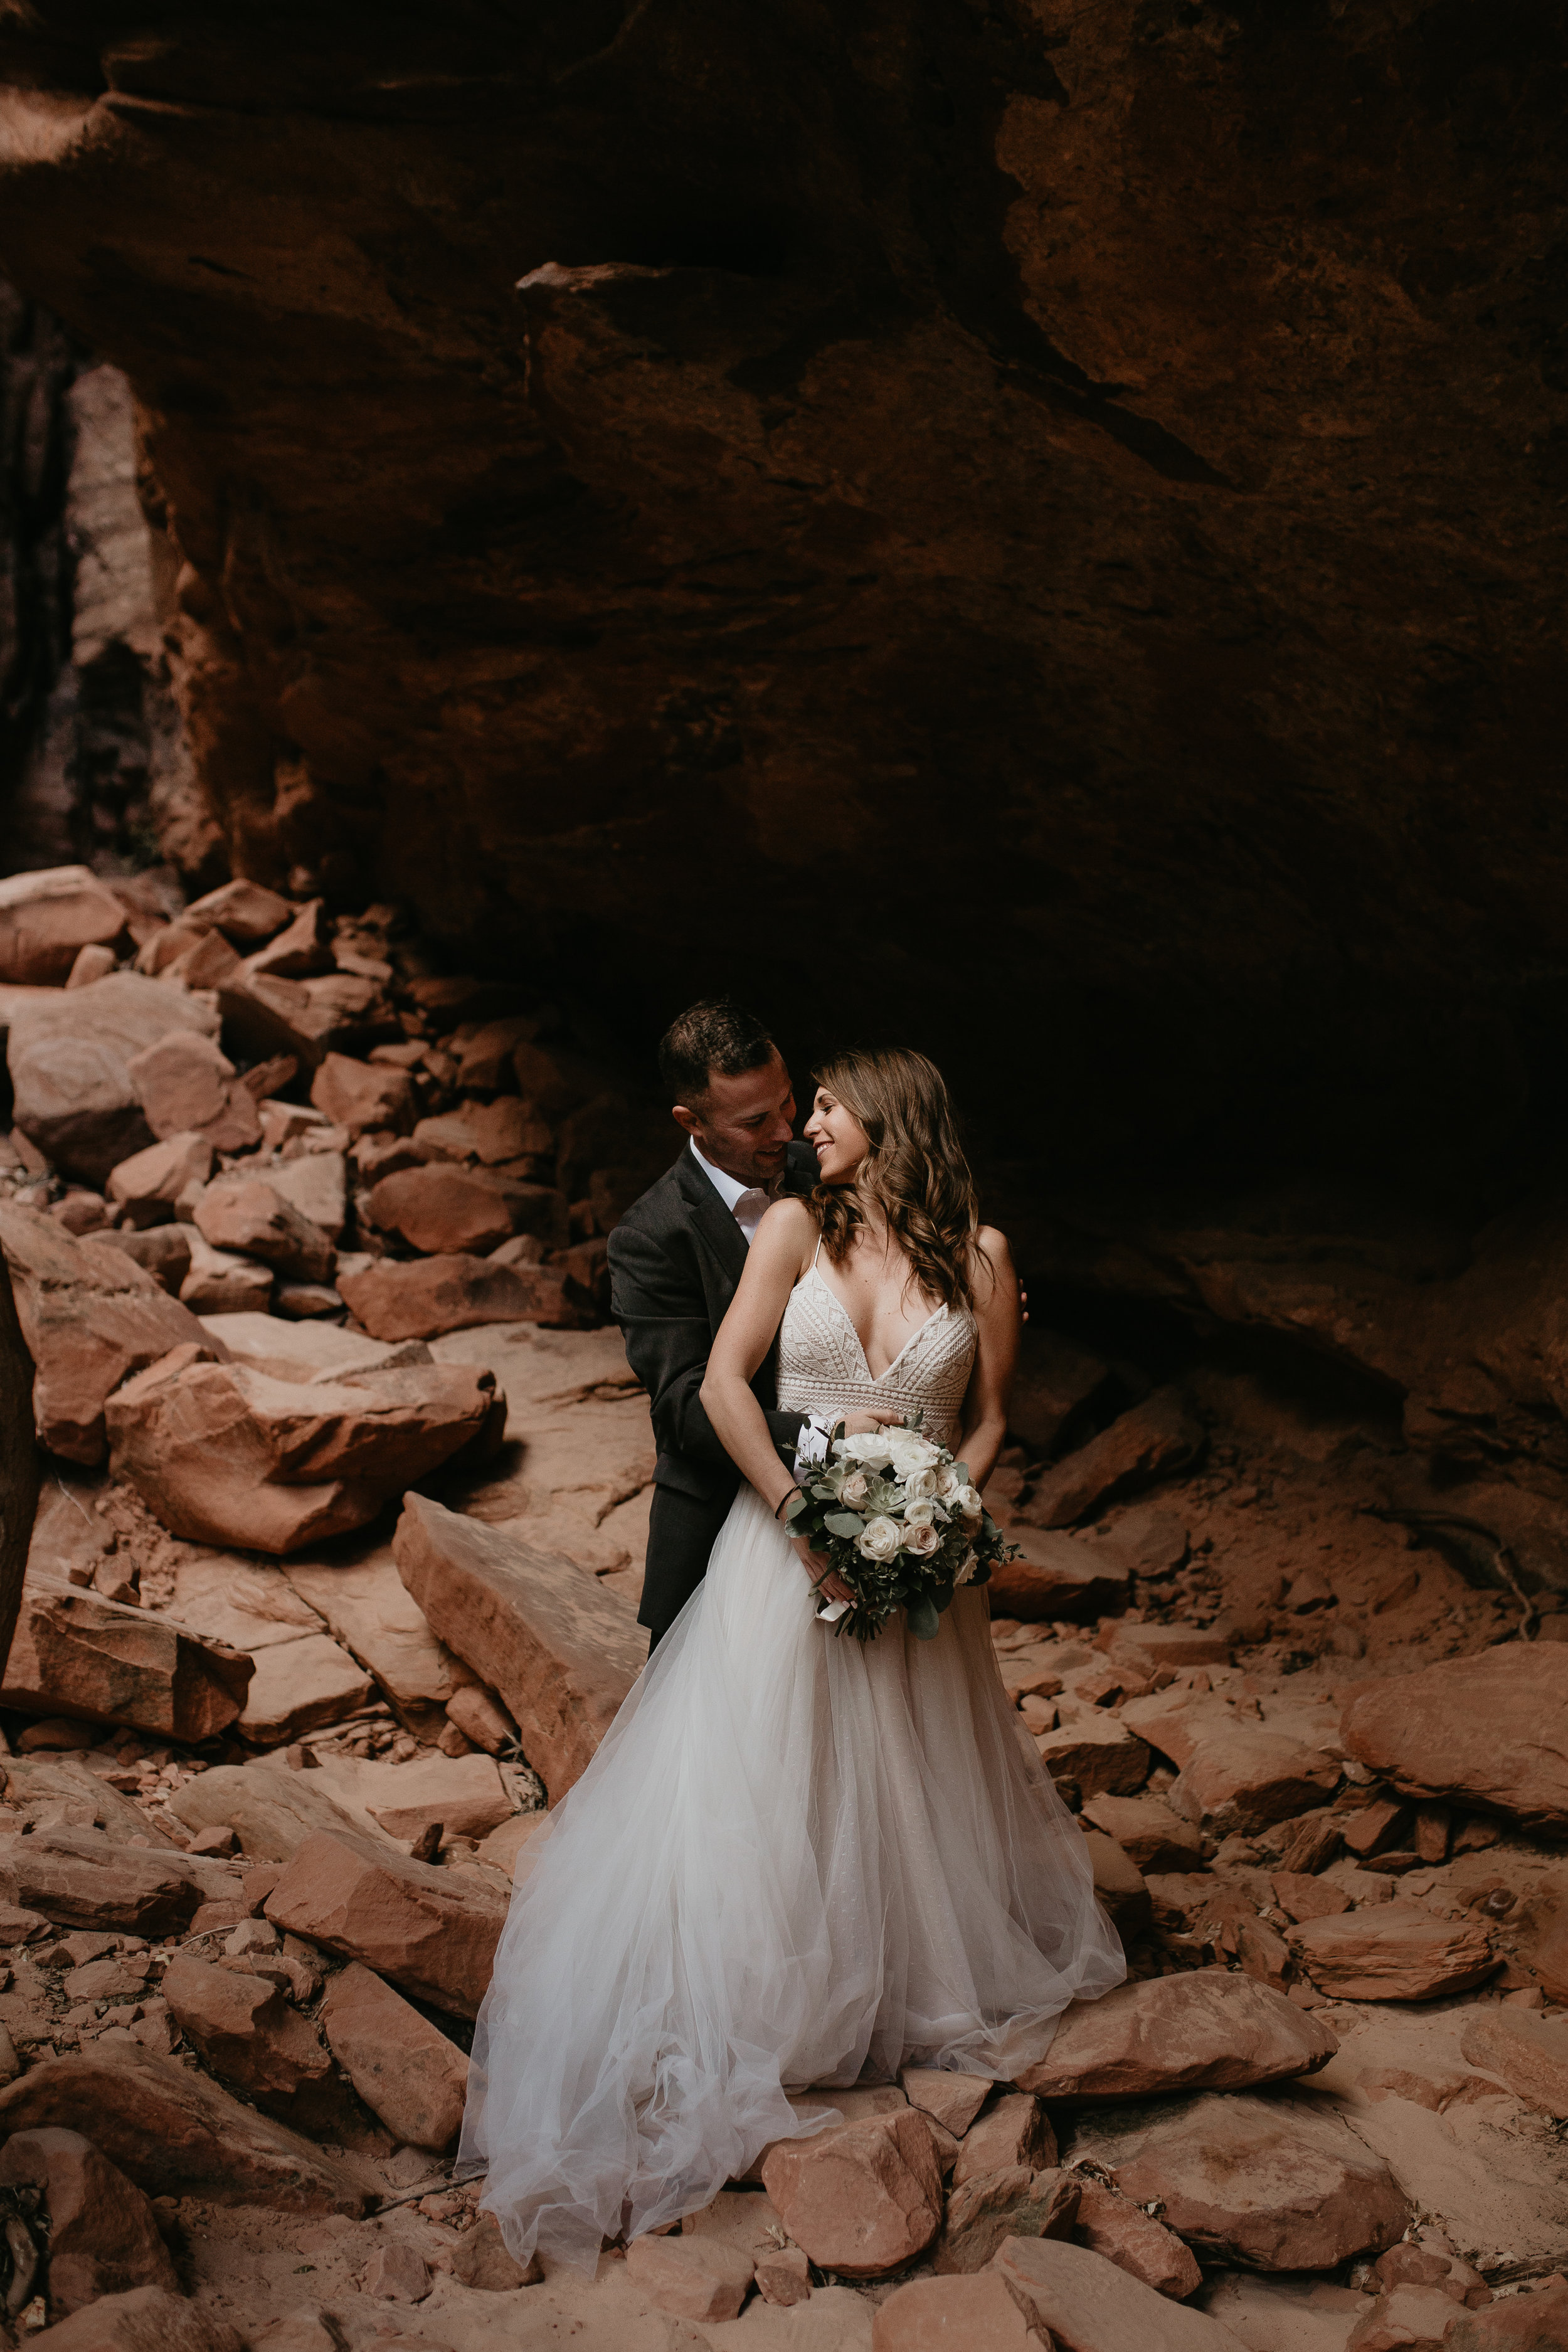 nicole-daacke-photography-zion-national-park-elopement-photographer-canyon-overlook-trail-elope-hiking-adventure-wedding-photos-fall-utah-red-rock-canyon-stgeorge-eloping-photographer-28.jpg